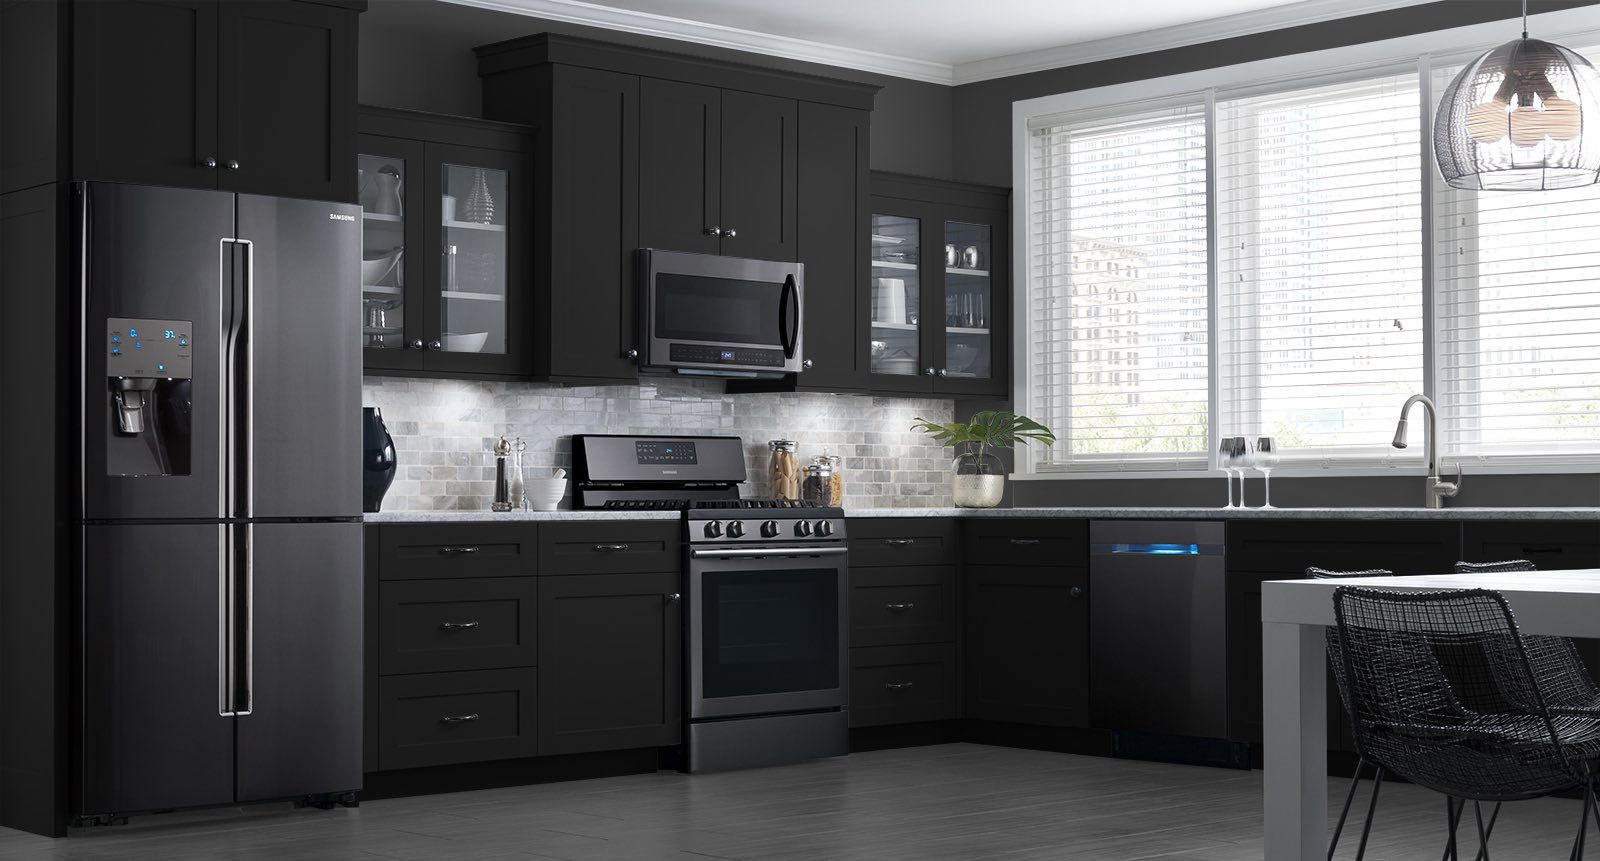 These Samsung Black Stainless Steel Appliances Look Beautiful In